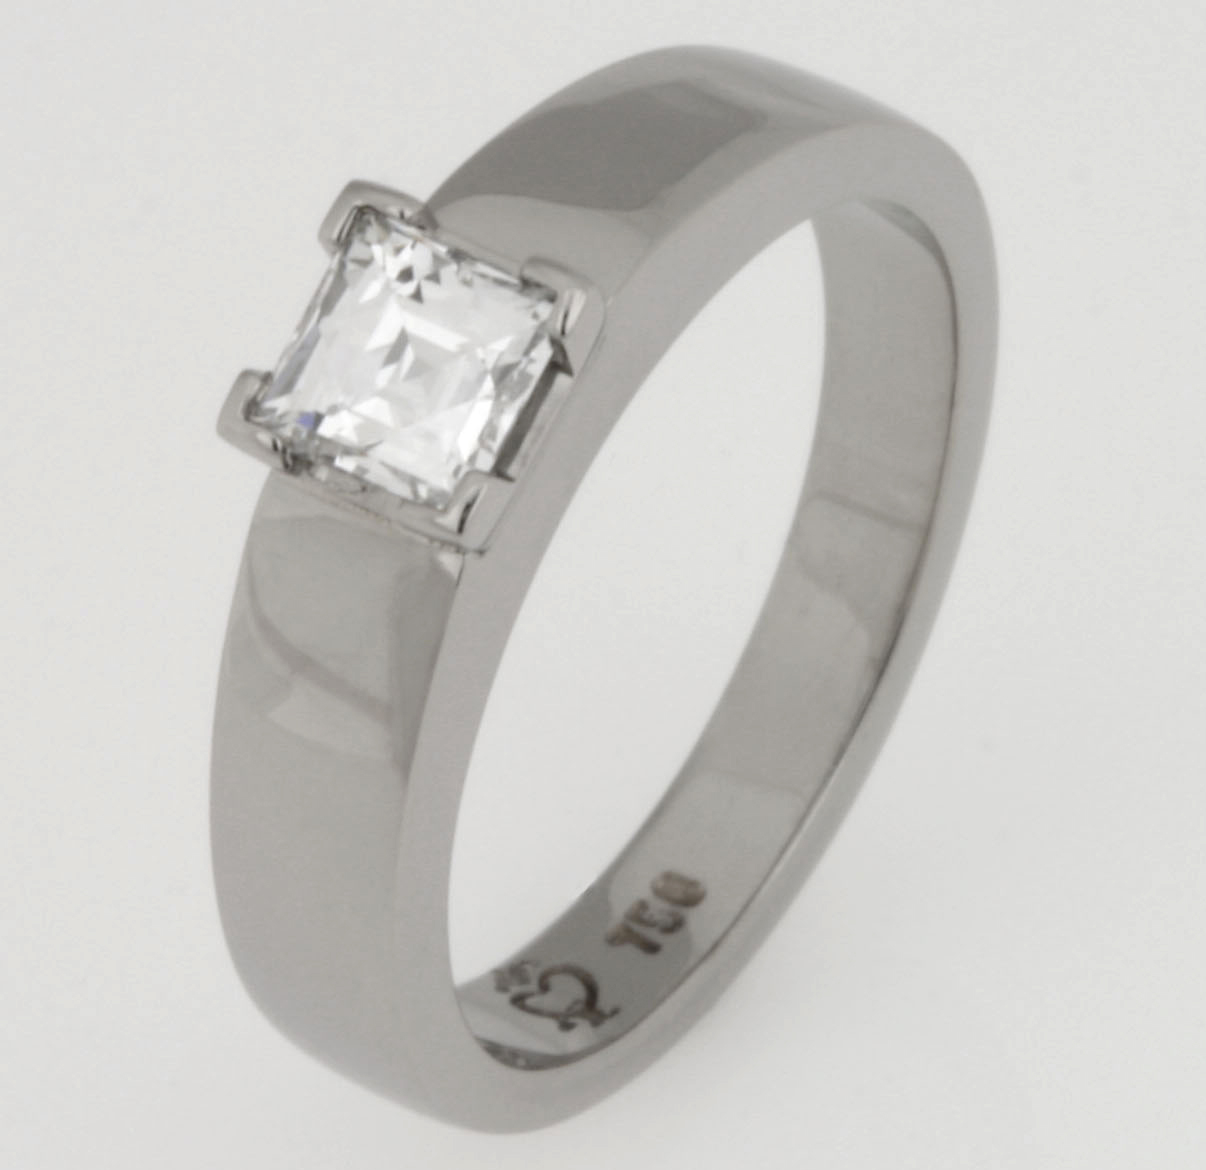 Handmade ladies 18ct white gold engagement ring featuring a 'Tycoon' cut diamond